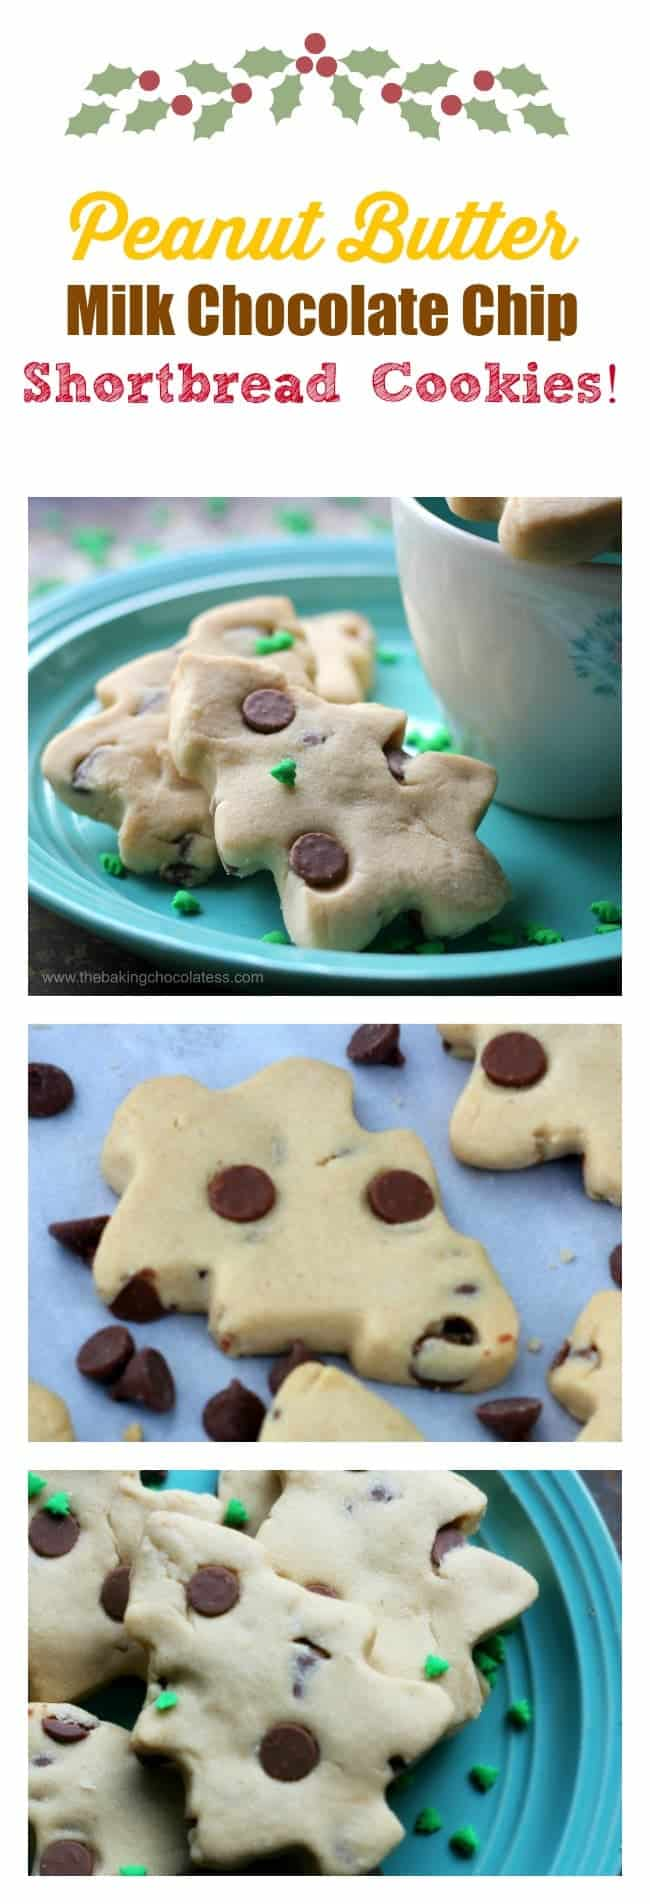 Peanut Butter Milk Chocolate Chip Shortbread Cookies! #shortbread #chocolate chip #cookies